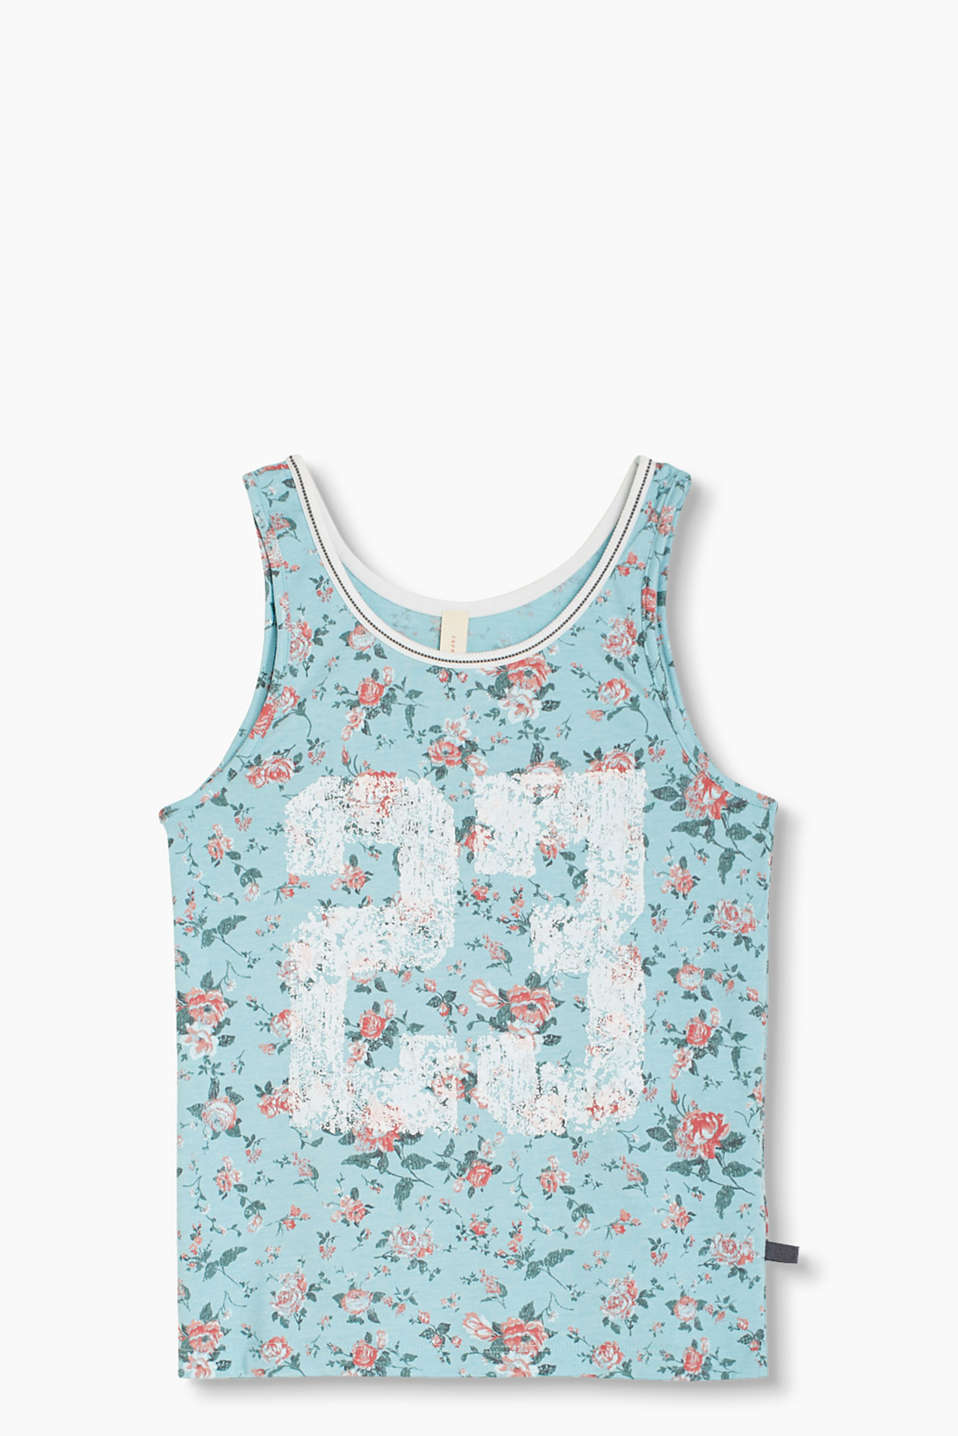 This vest is romantic and sporty all at once with its number print and vintage-style roses on soft jersey